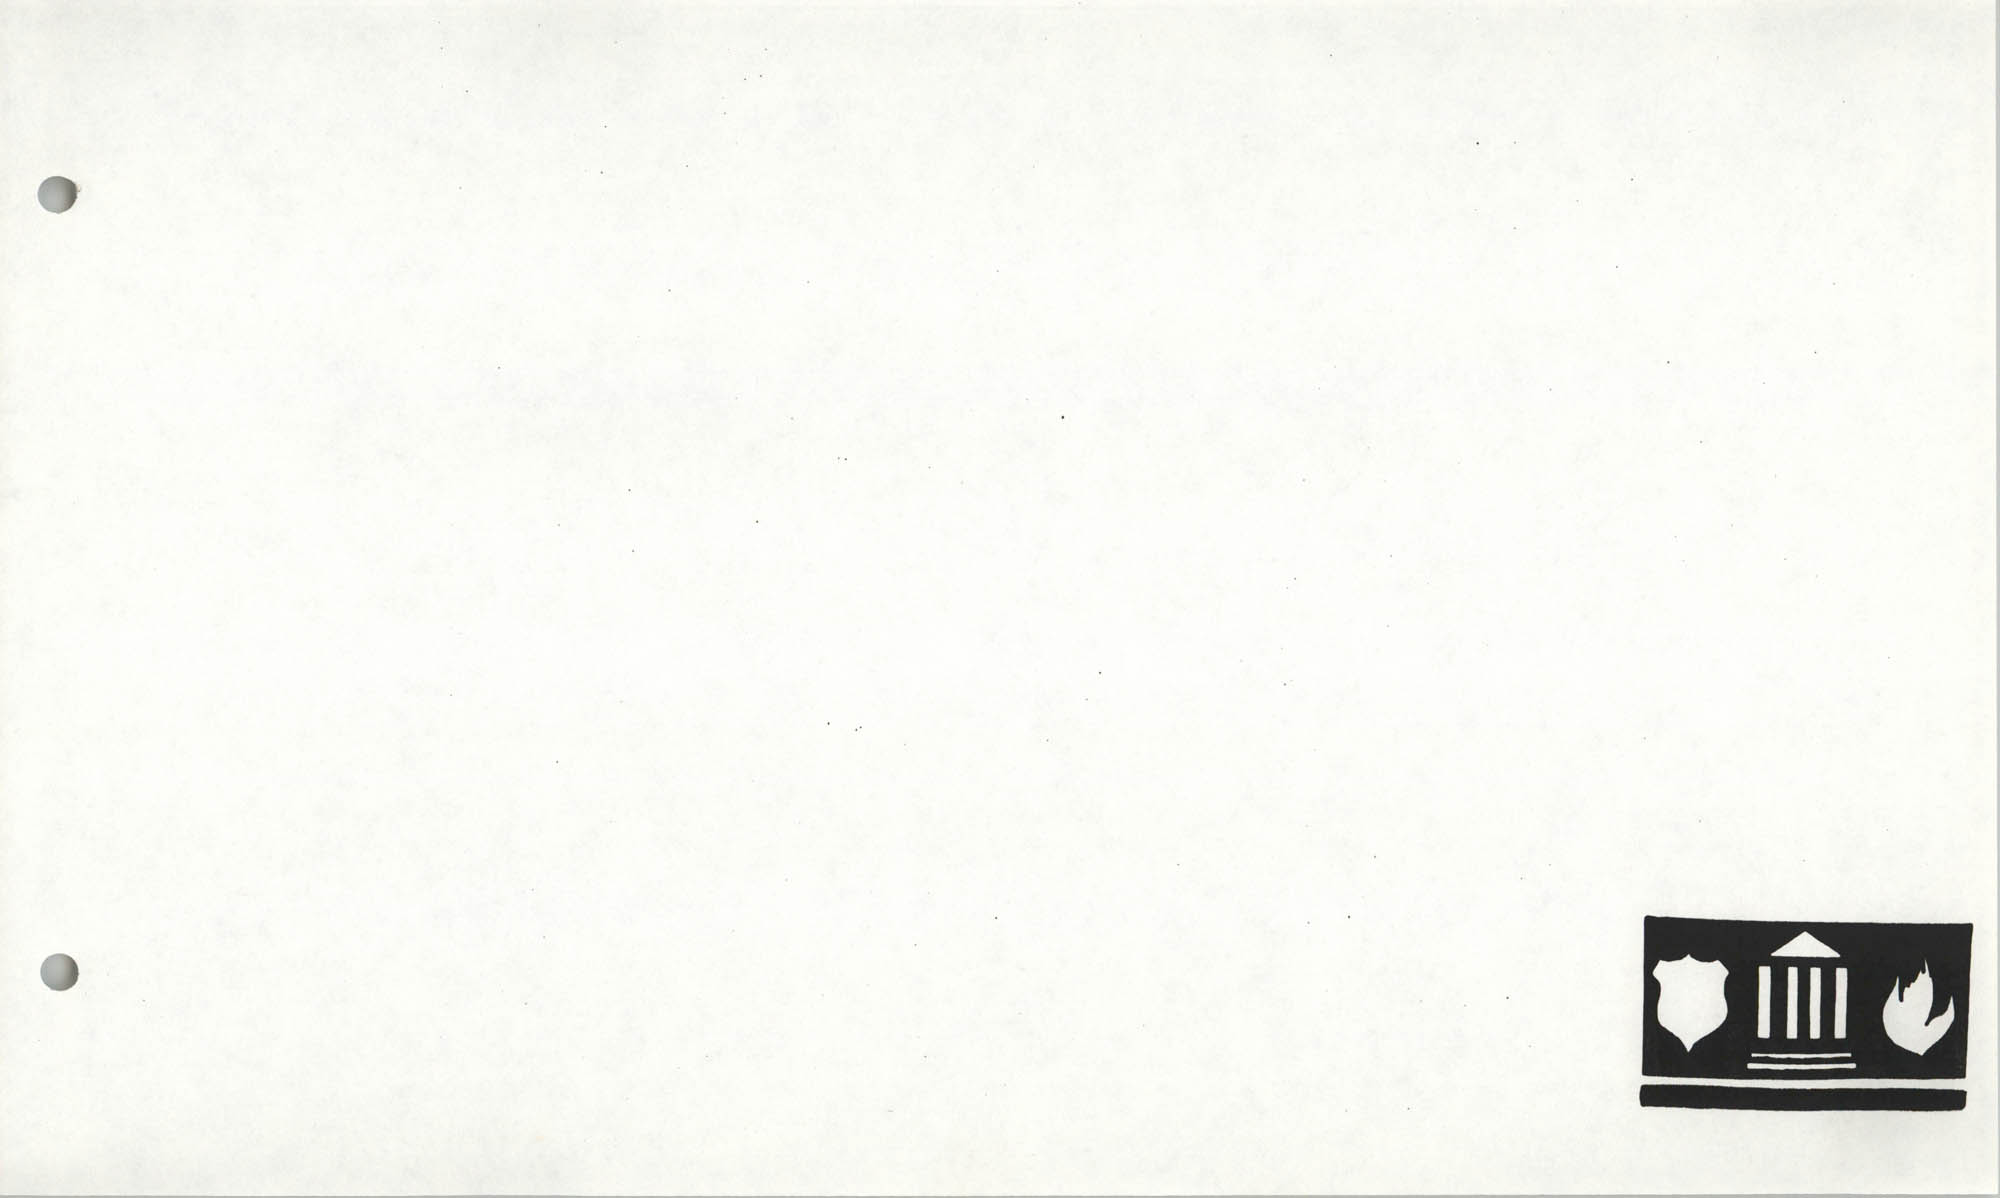 The City Council of Charleston, South Carolina, 1993 Budget, Blank